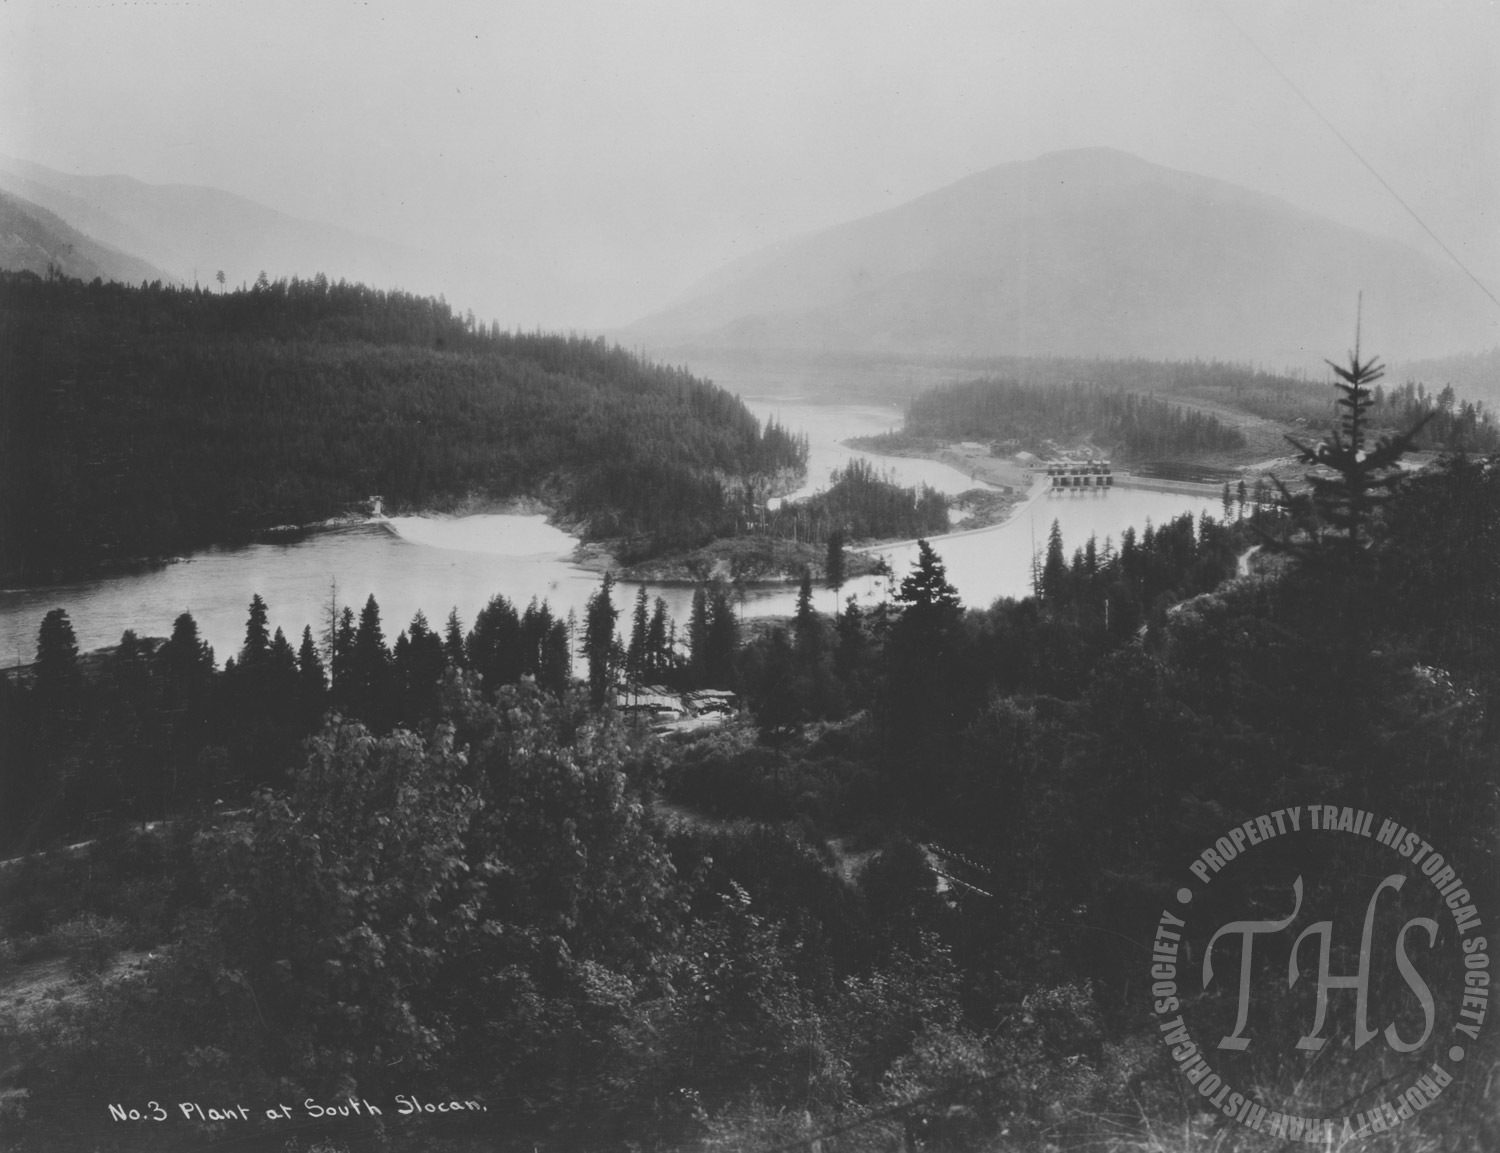 Overview of South Slocan Plant (Hughes) - 1930